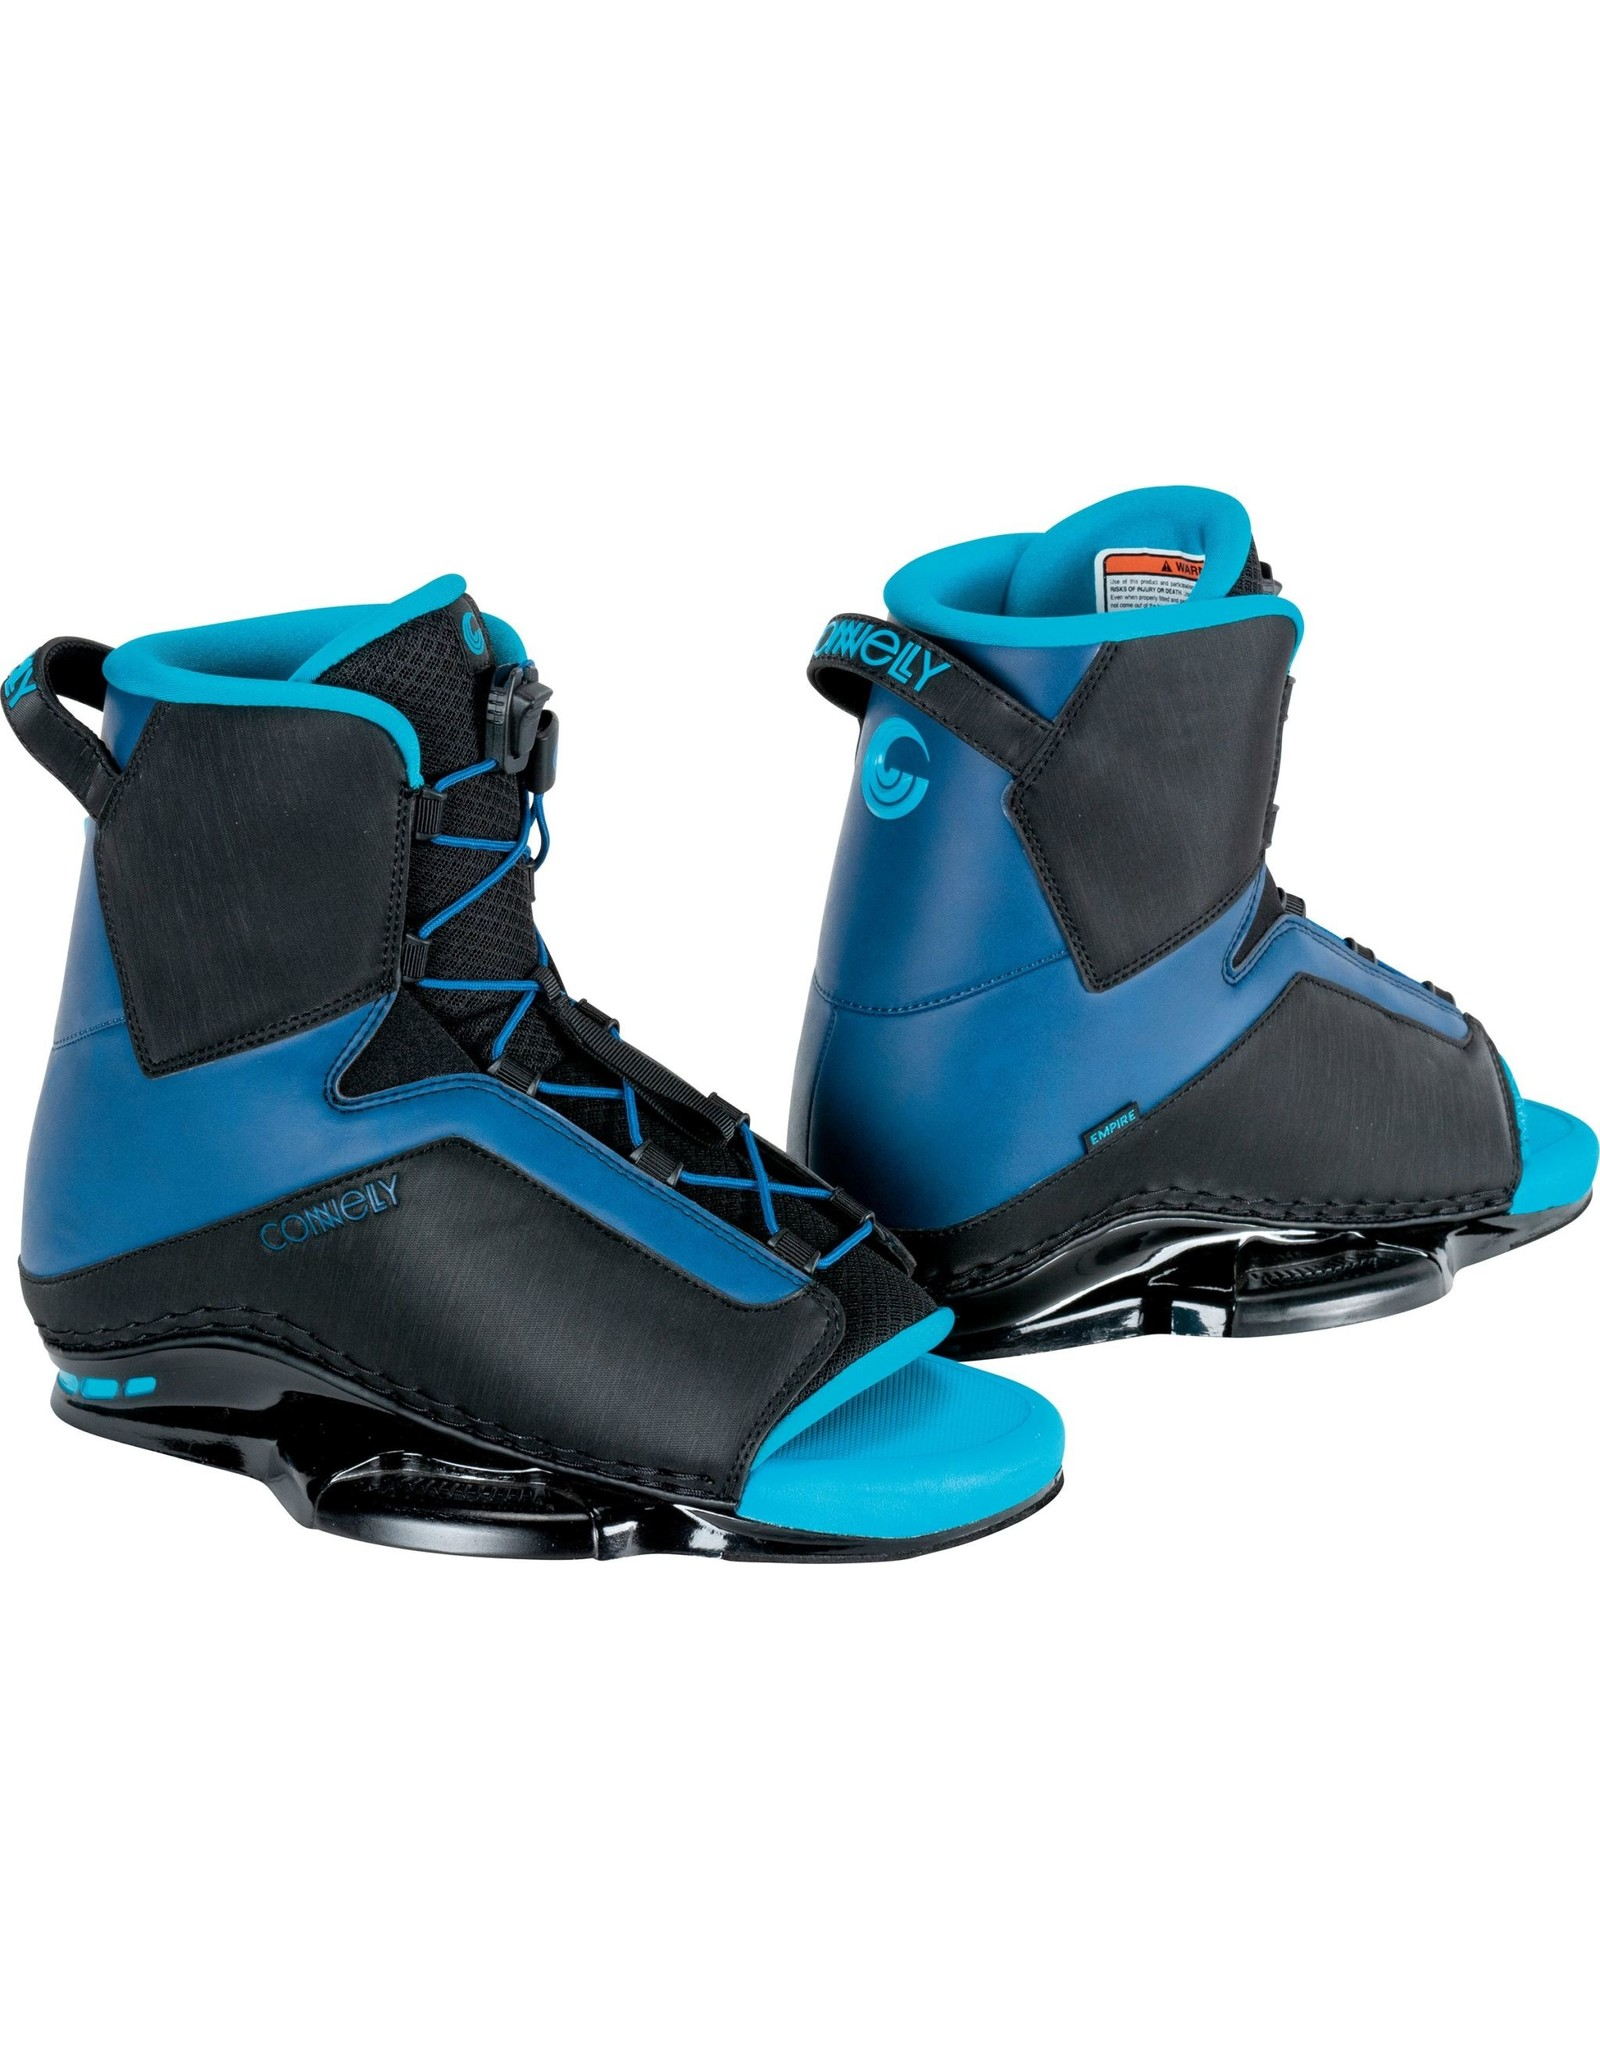 Connelly 2021 EMPIRE BOOT